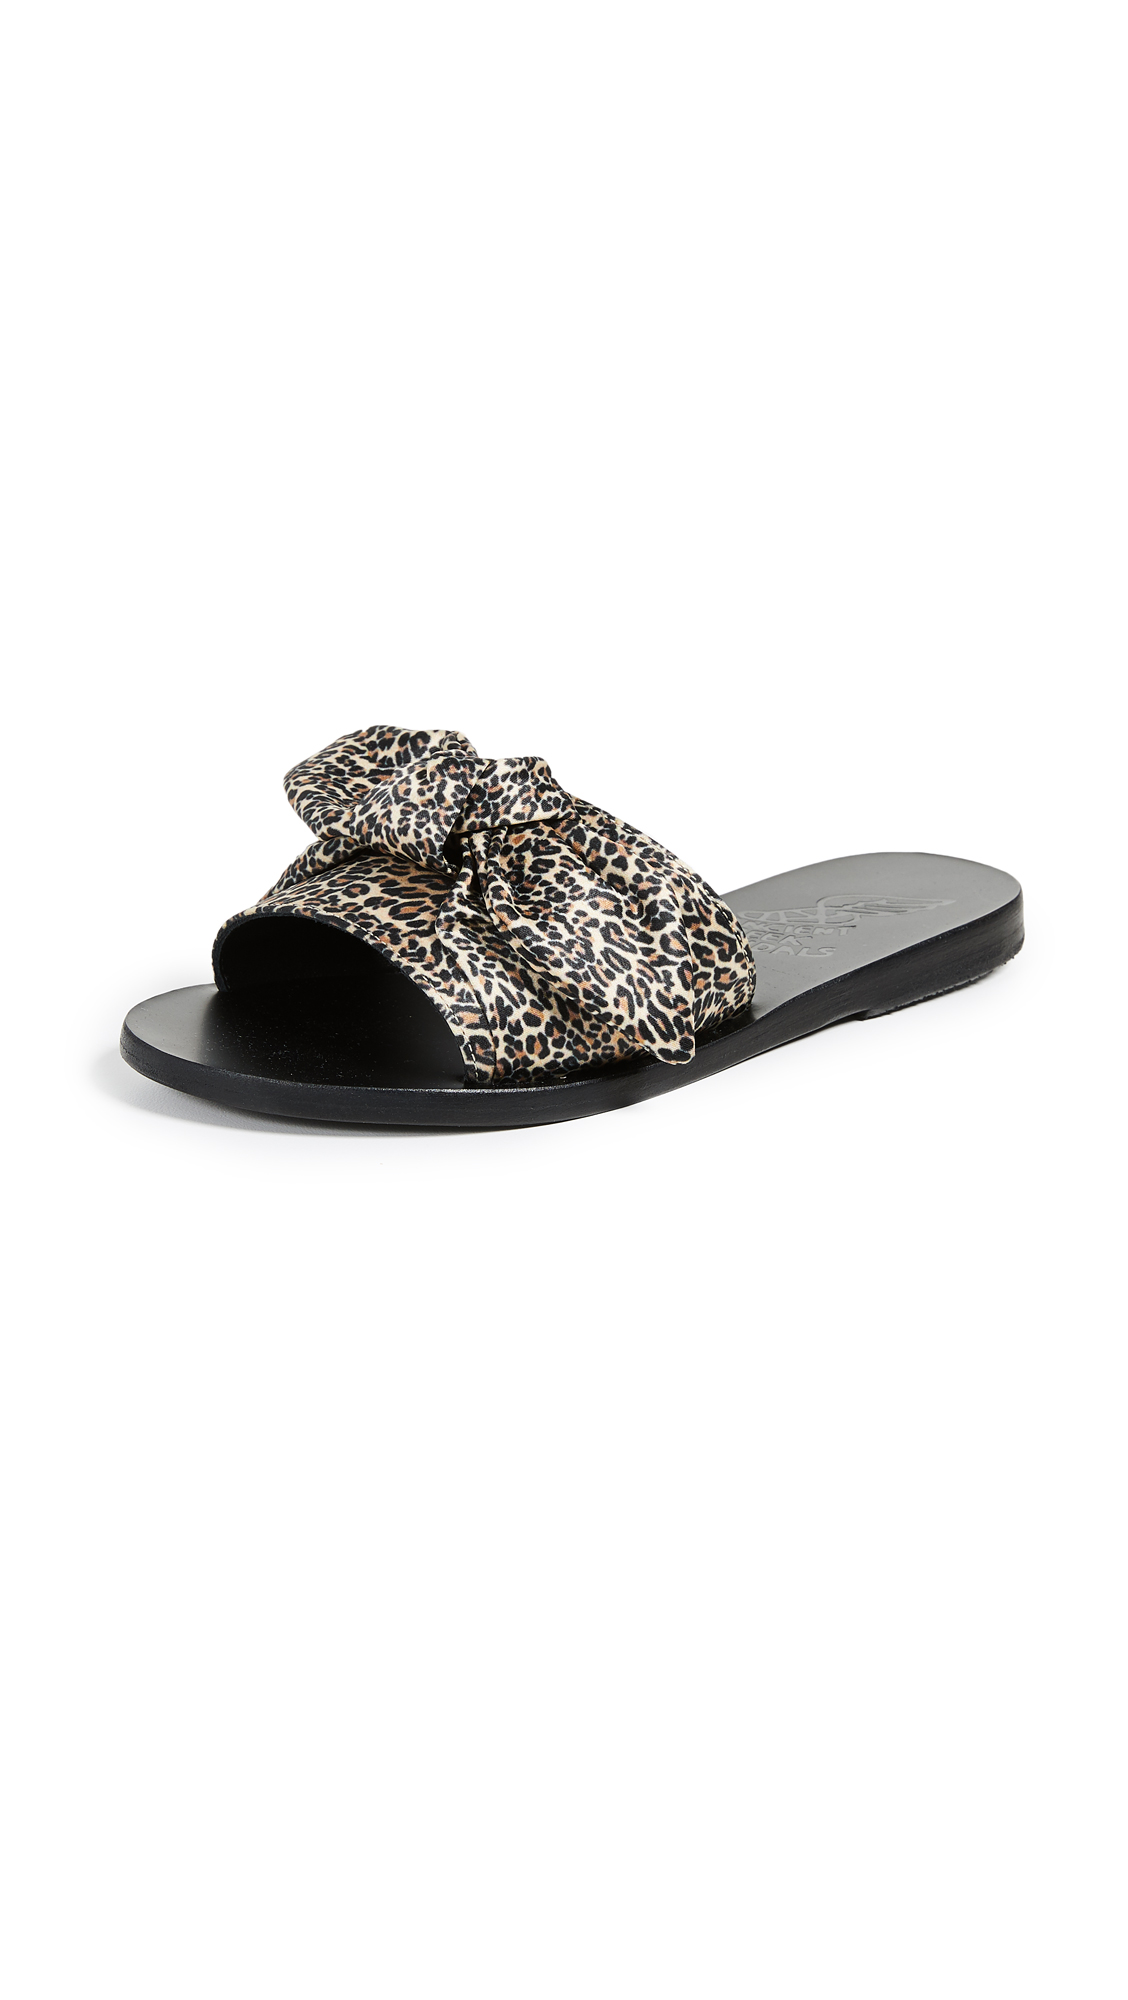 Ancient Greek Sandals Taygete Bow Slide Sandals - Leopard